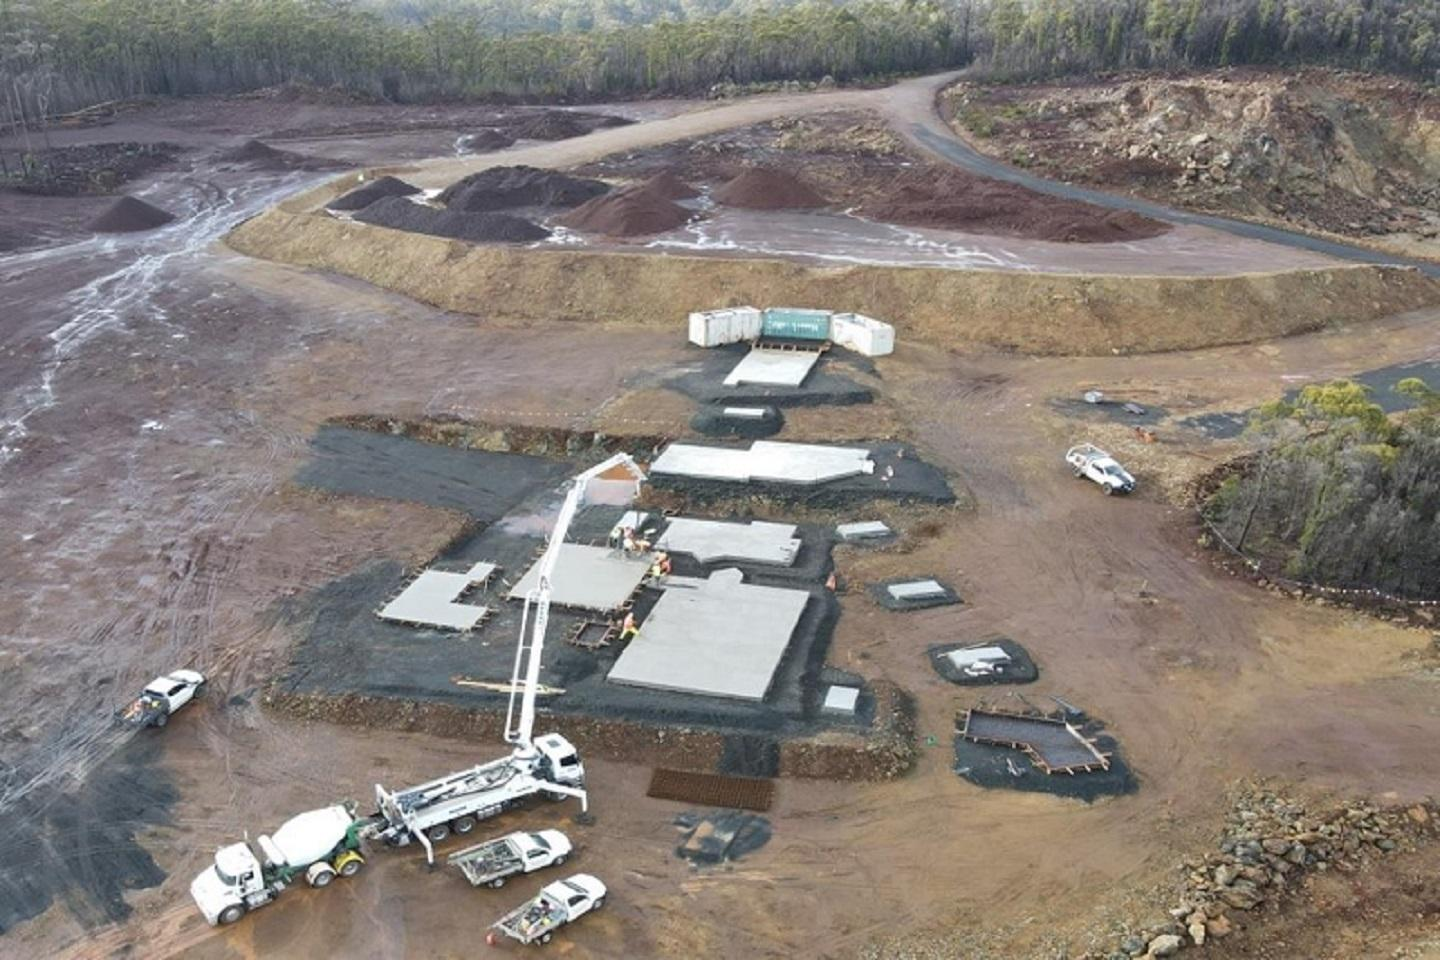 Venture gears up for Tassie iron ore production